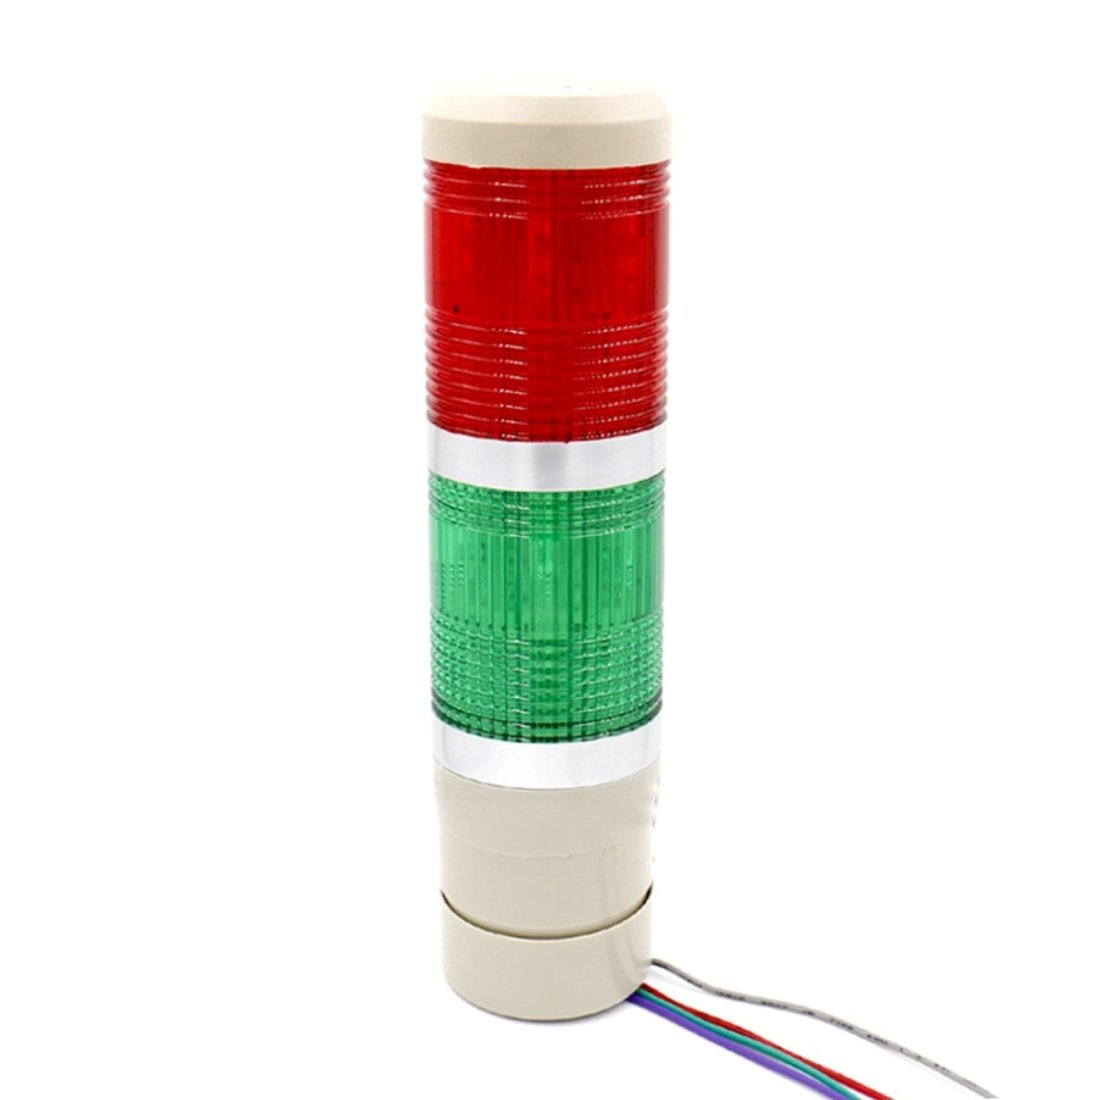 Baomain Industrial Signal Light Column LED Alarm Round Tower Light Indicator Continuous light Warning light Red Green DC 24V